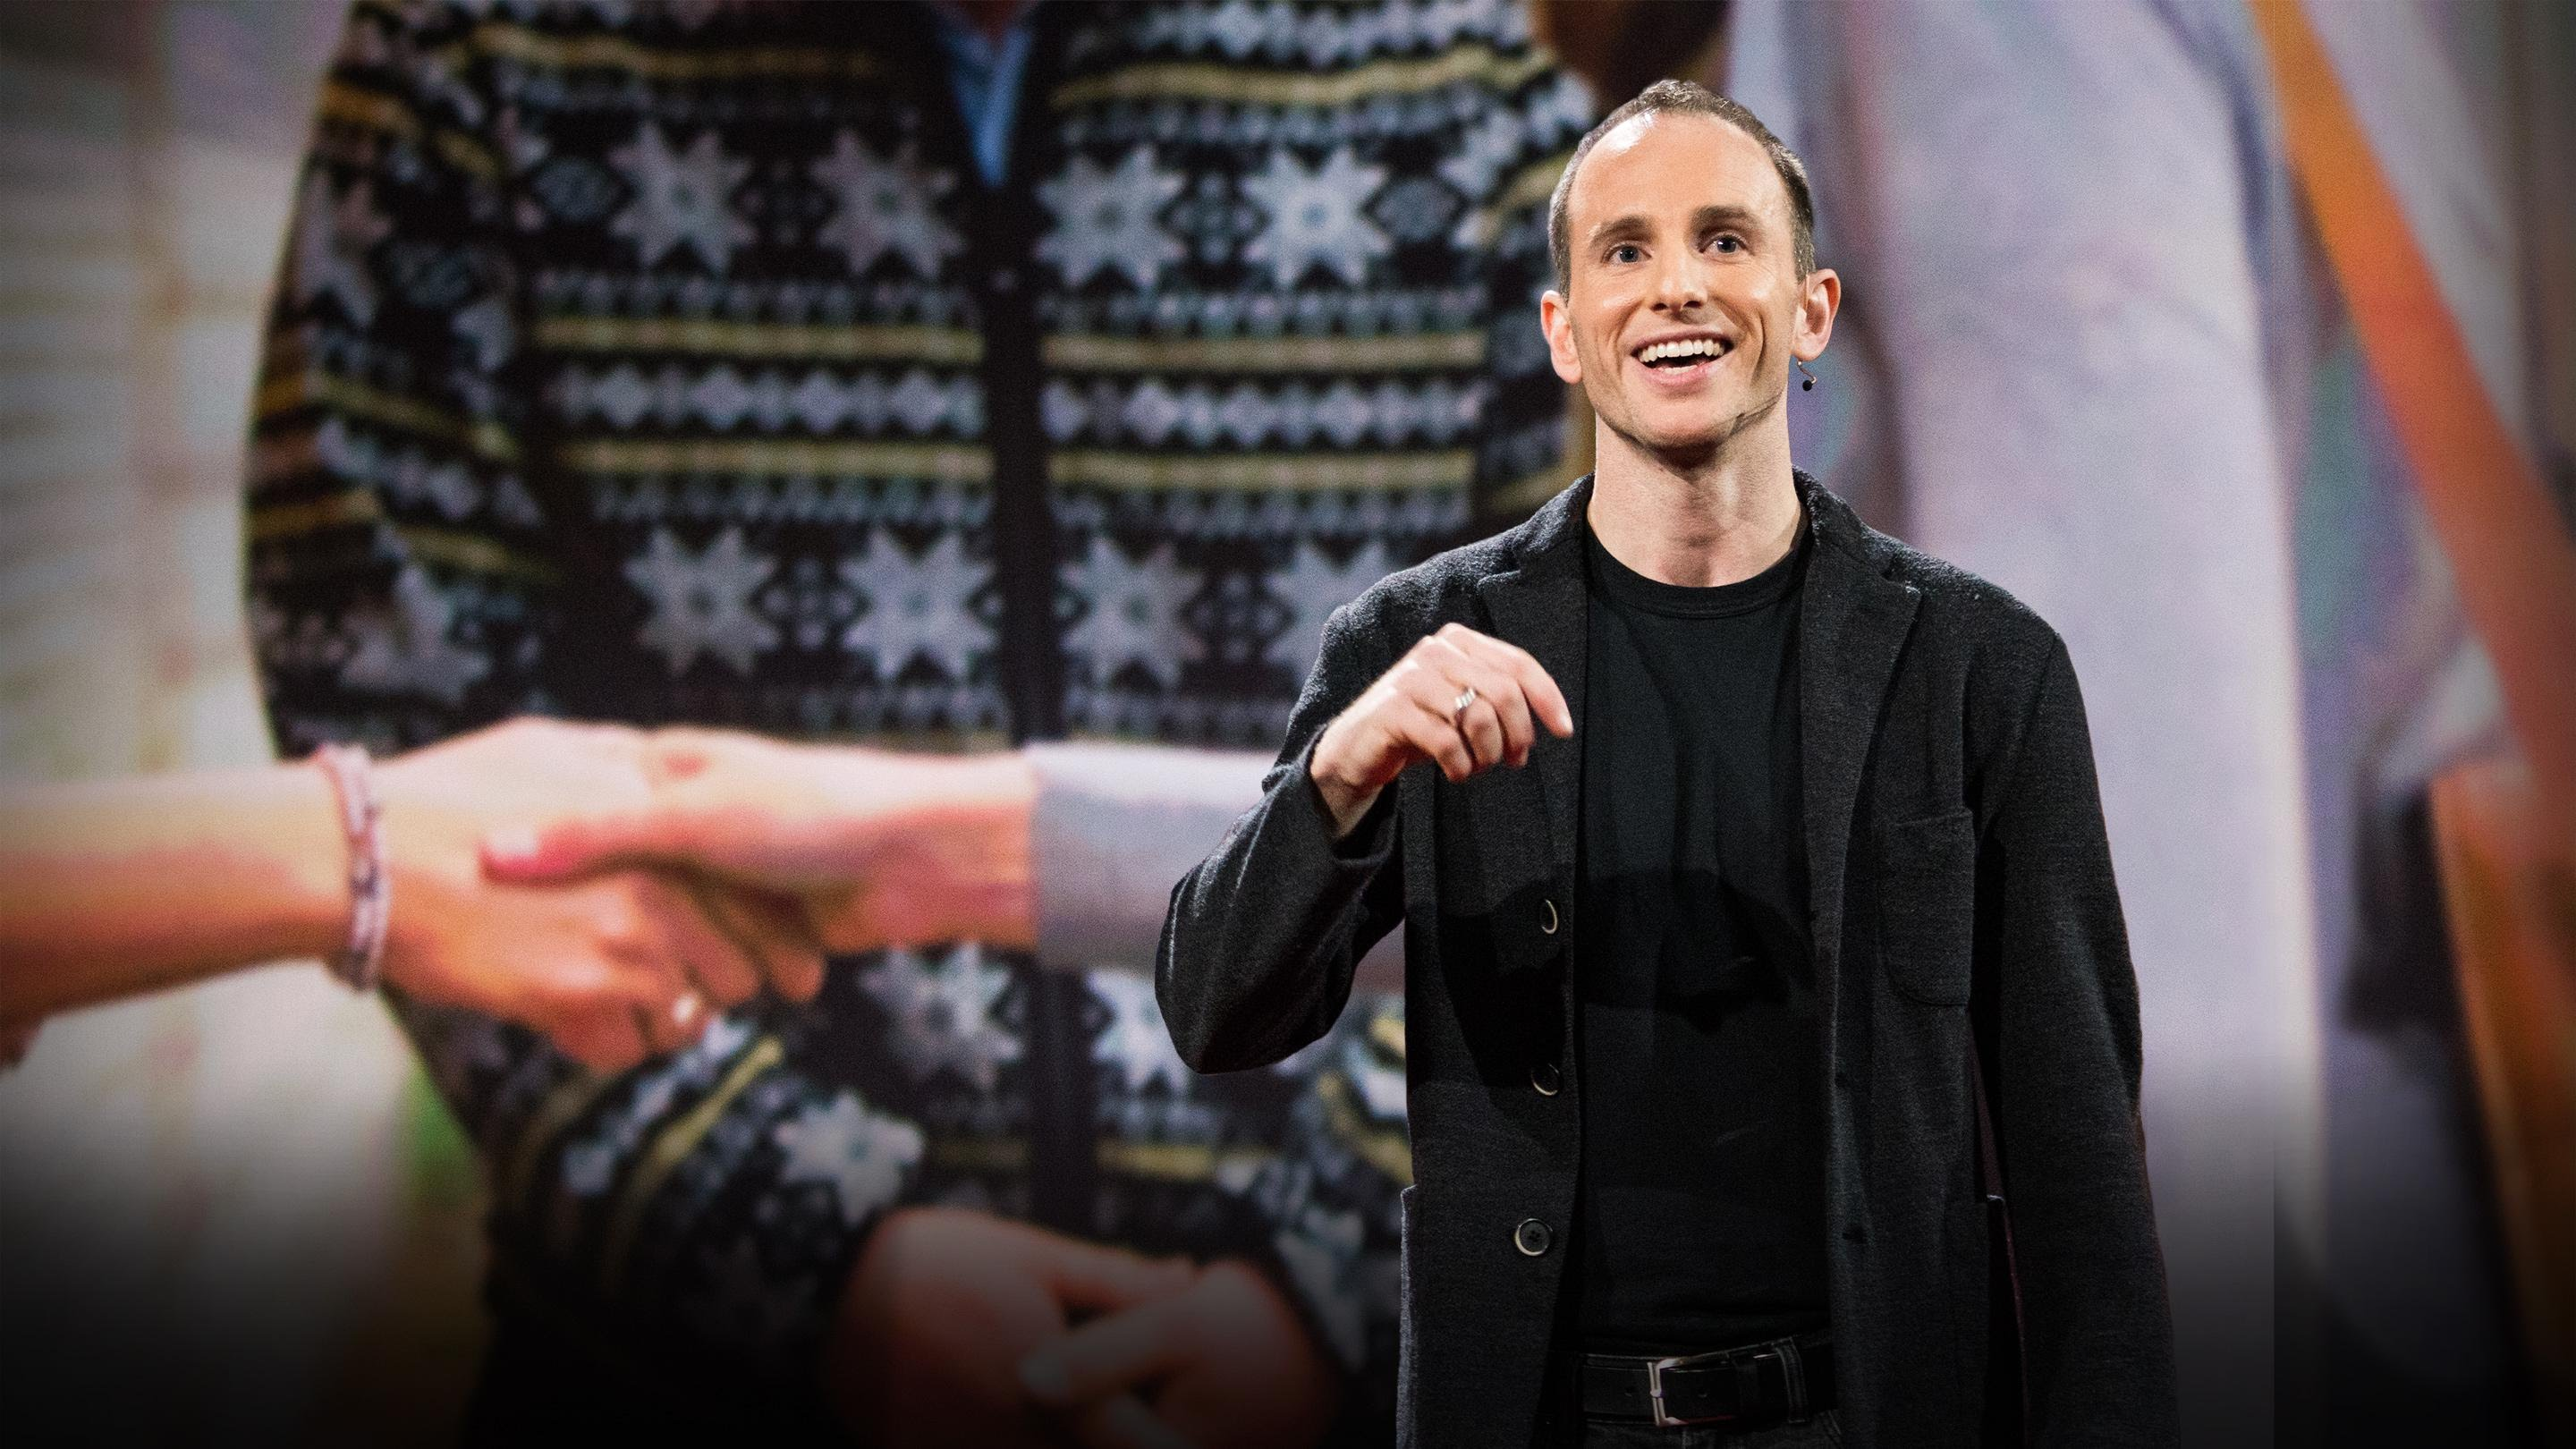 「Joe Gebbia:Airbnb 如何透過設計建立互信」- How Airbnb Designs for Trust